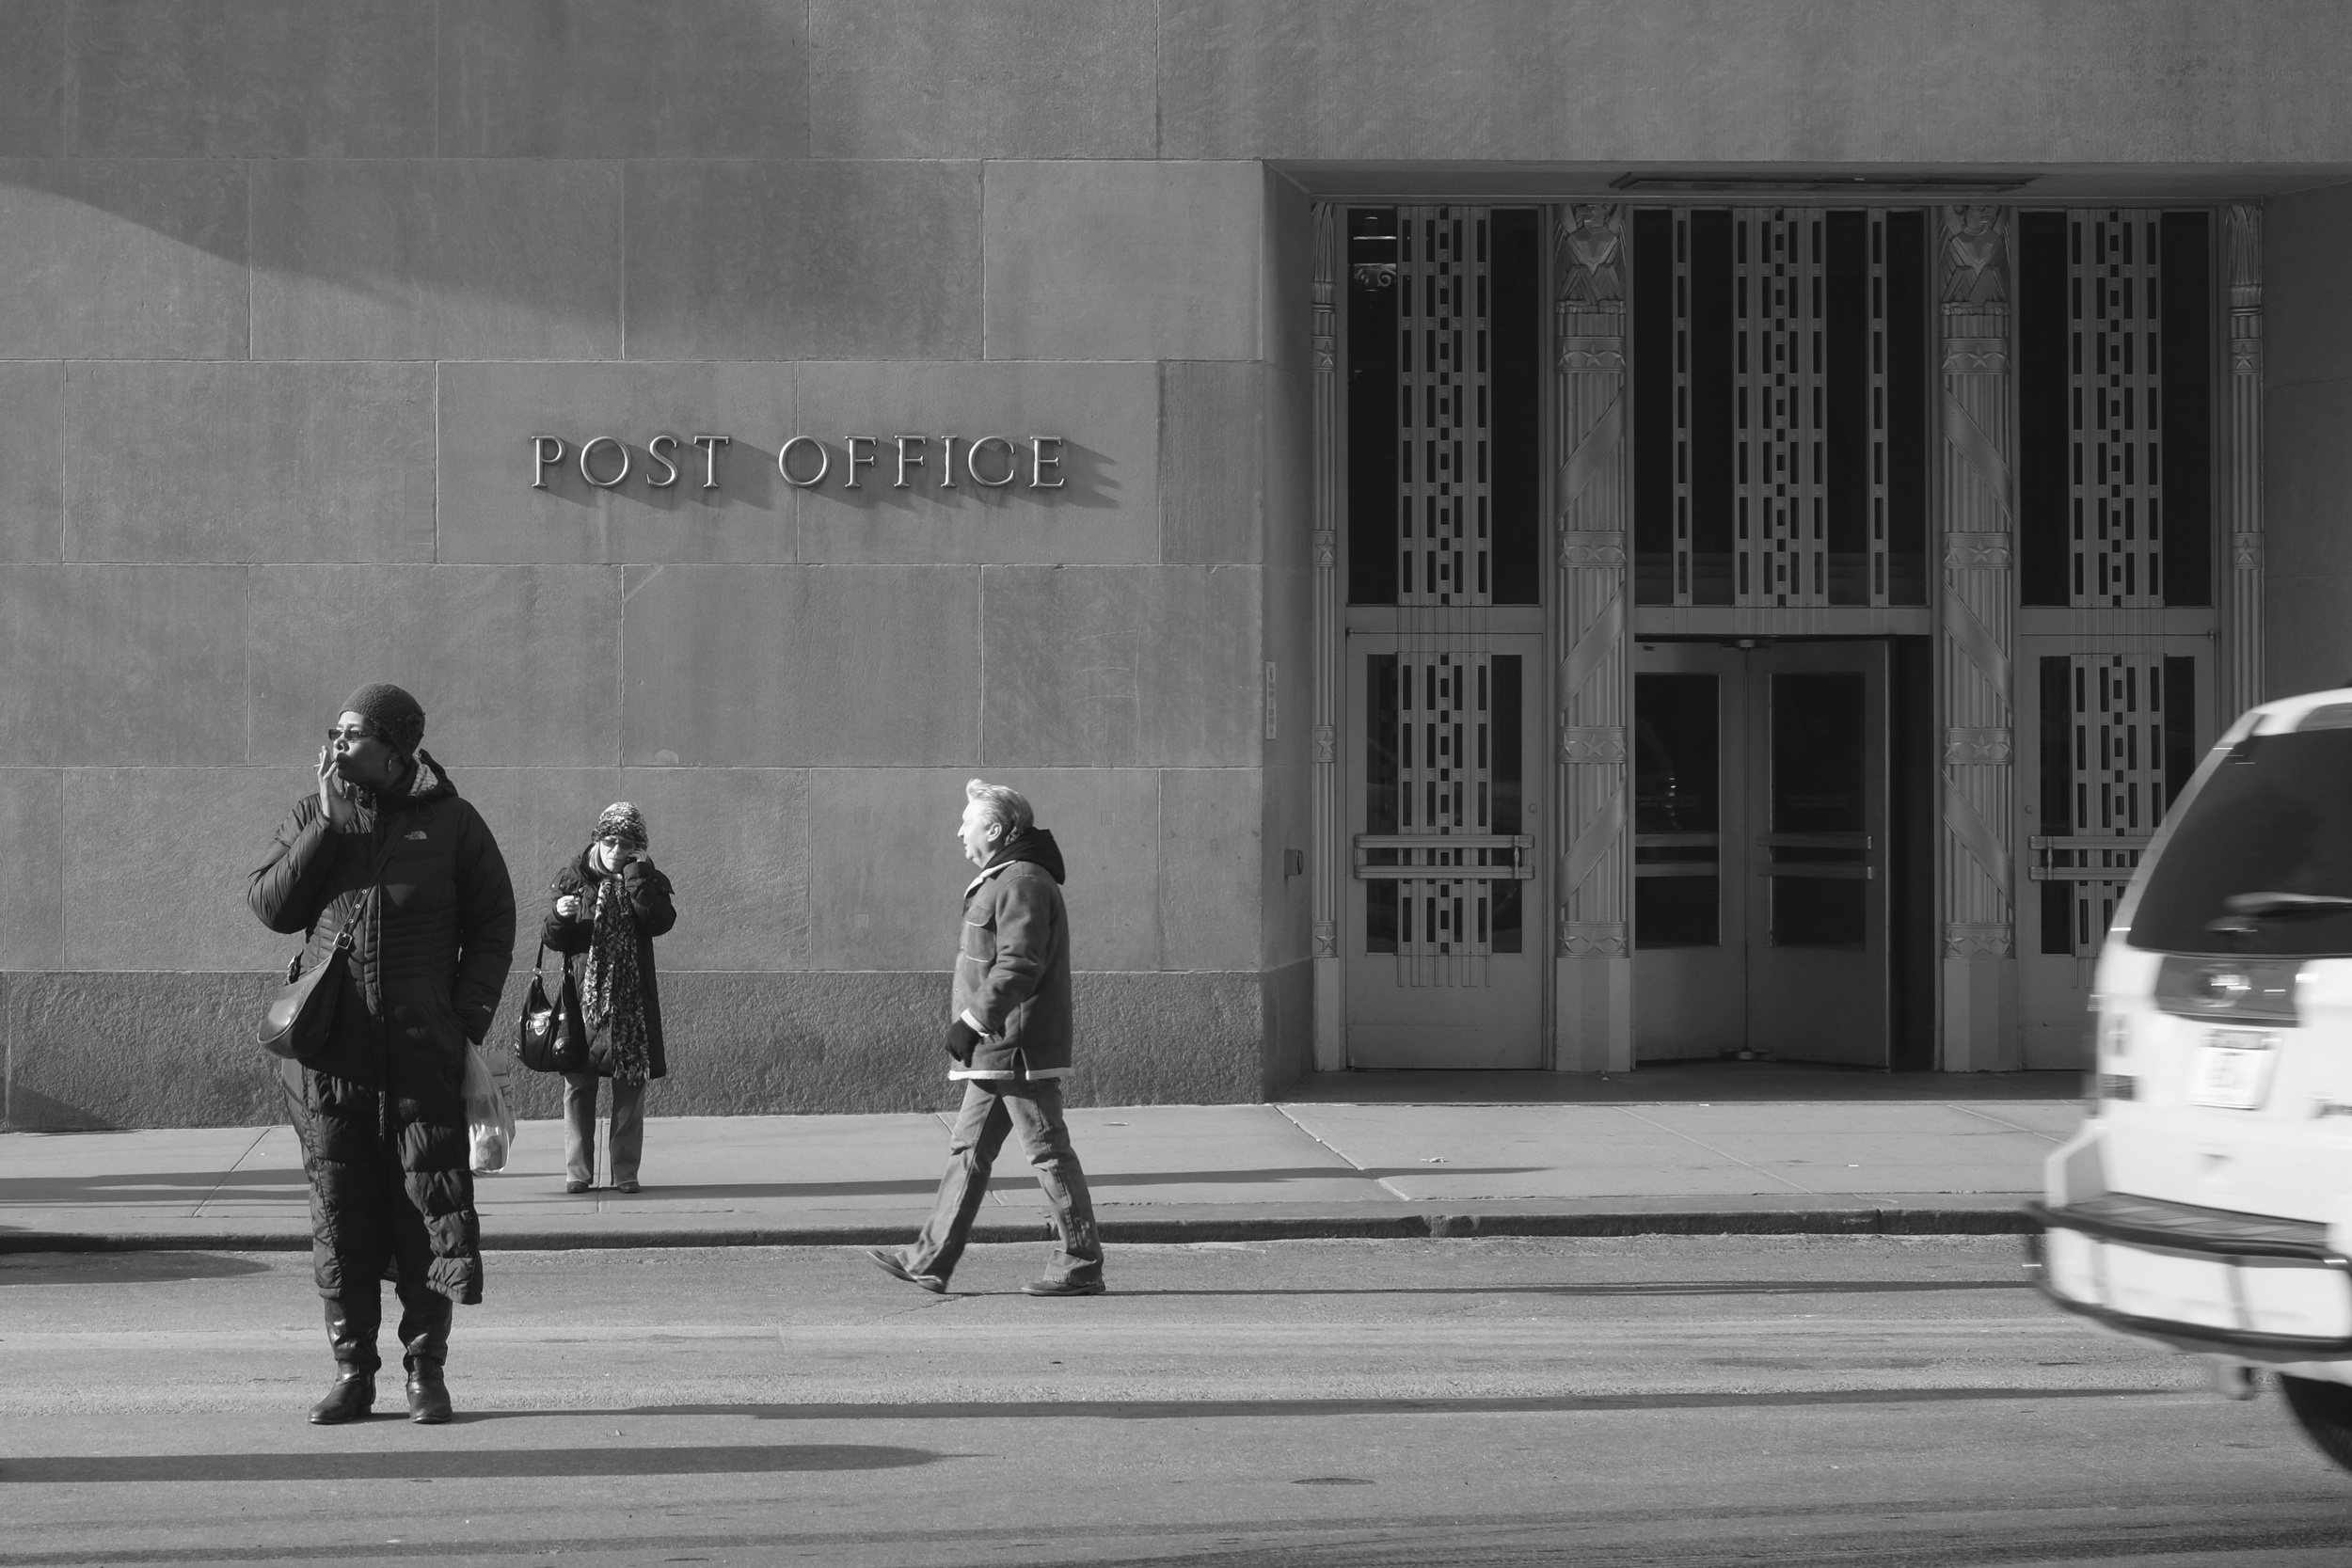 Financial District Post Office. ISO 400, f8, 1/220 at 35mm.